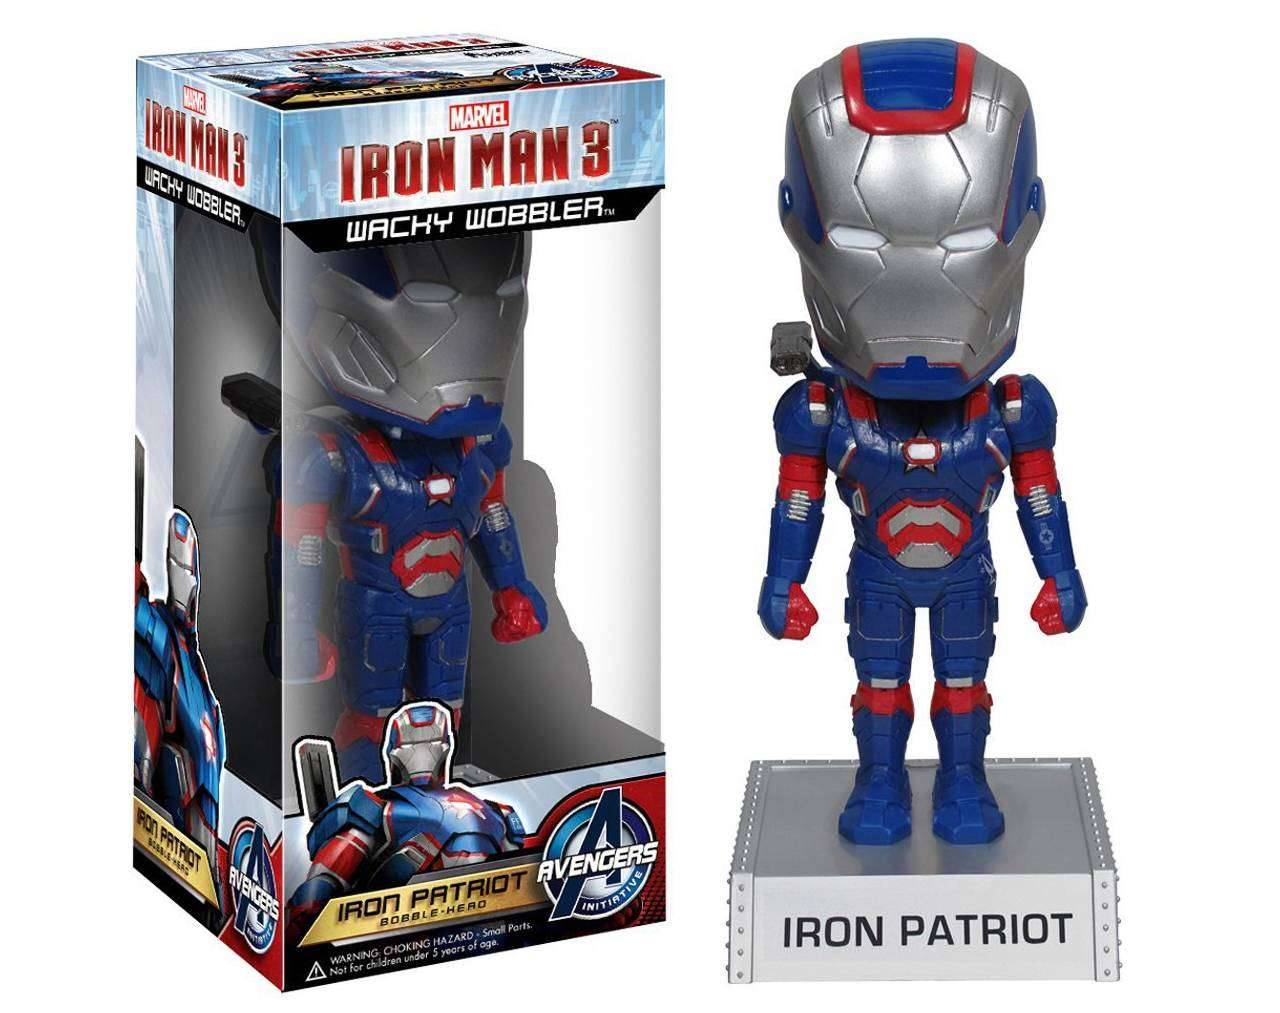 Iron Patriot Wacky Wobbler